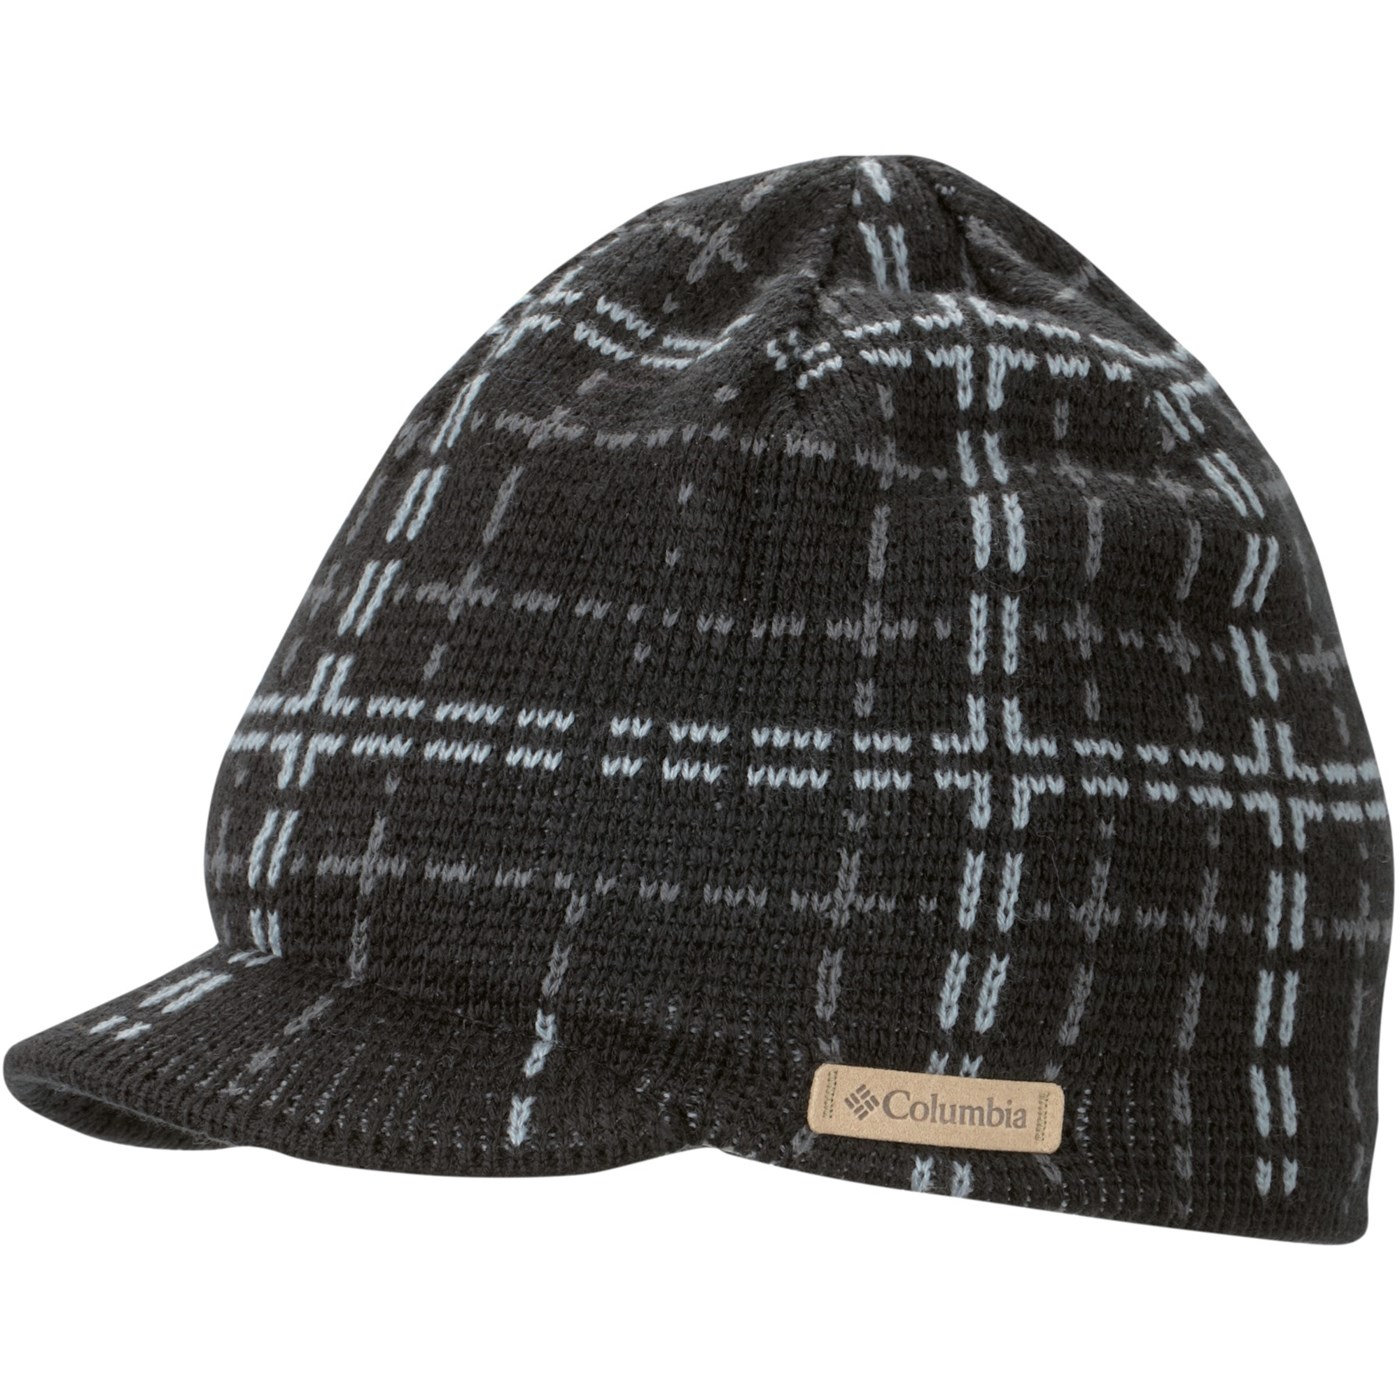 47e7a5bc207 Columbia Sportswear Northern Peak Omni Wick® Visor Beanie Hat (For Men and  Women)